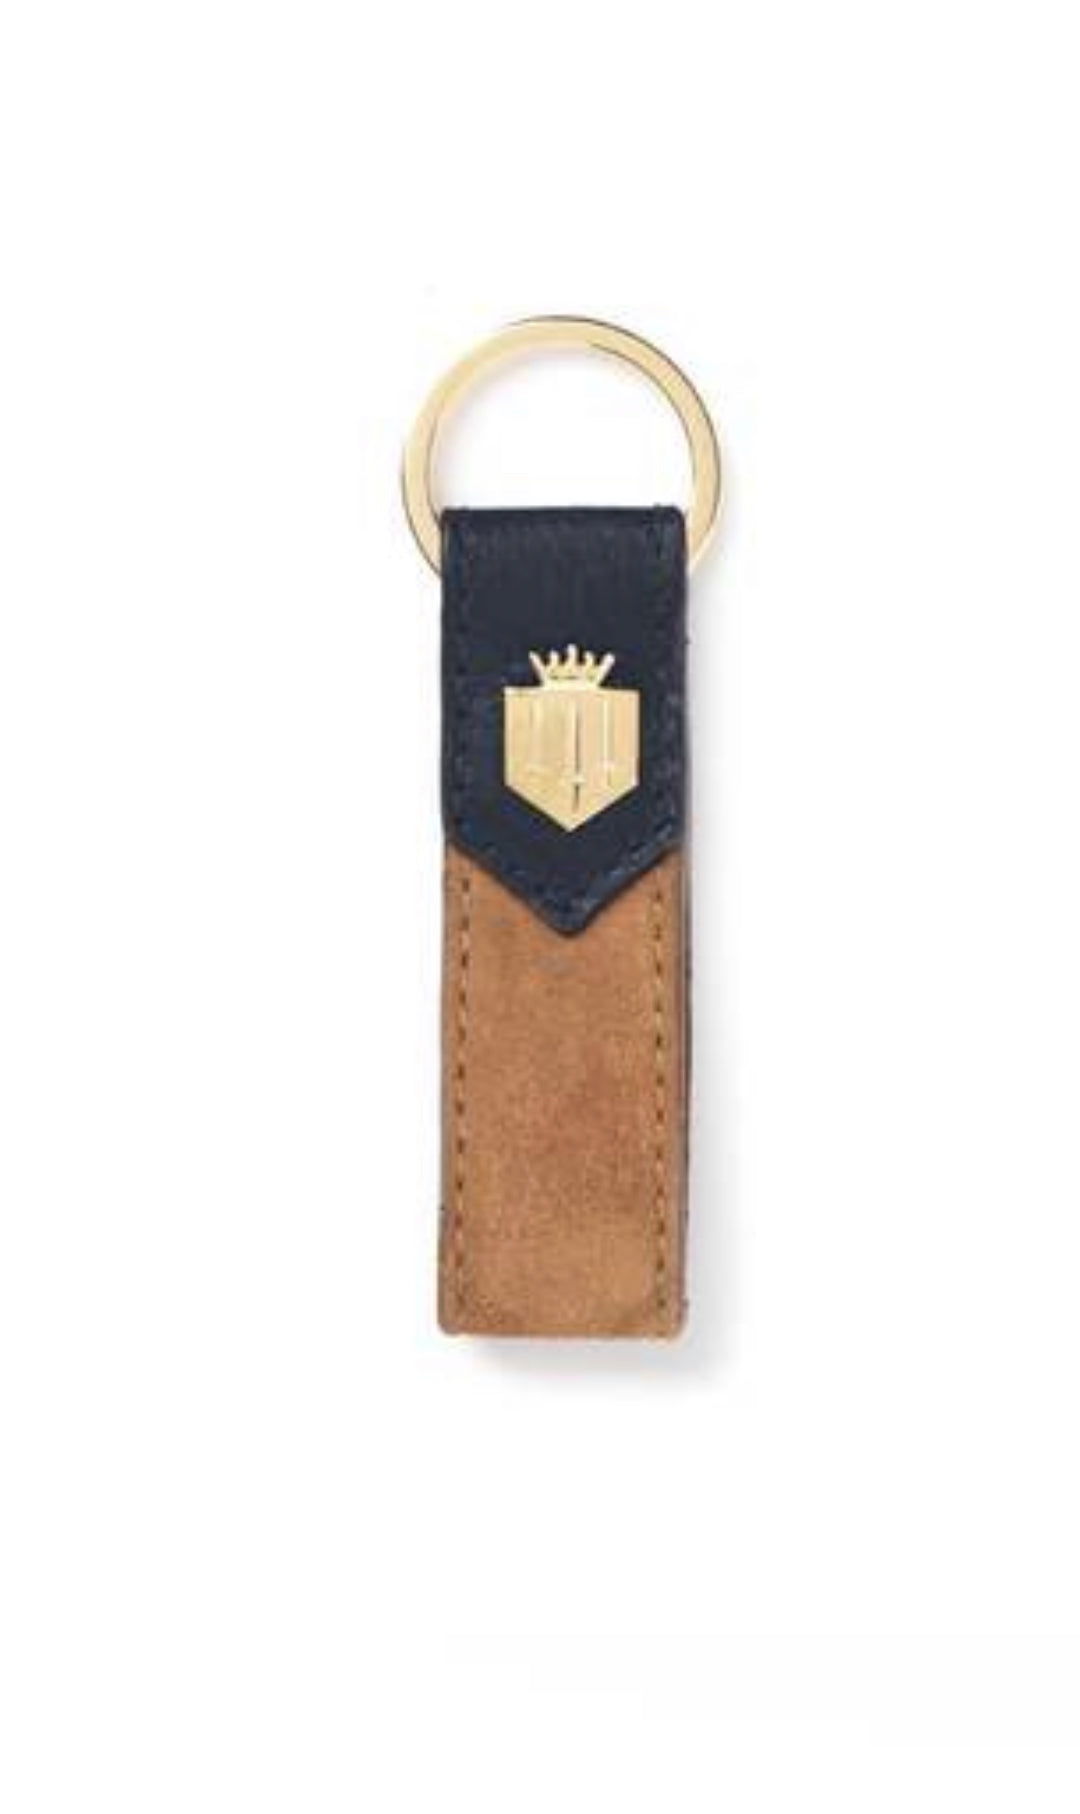 Fairfax & Favor Keyring - Navy / Tan